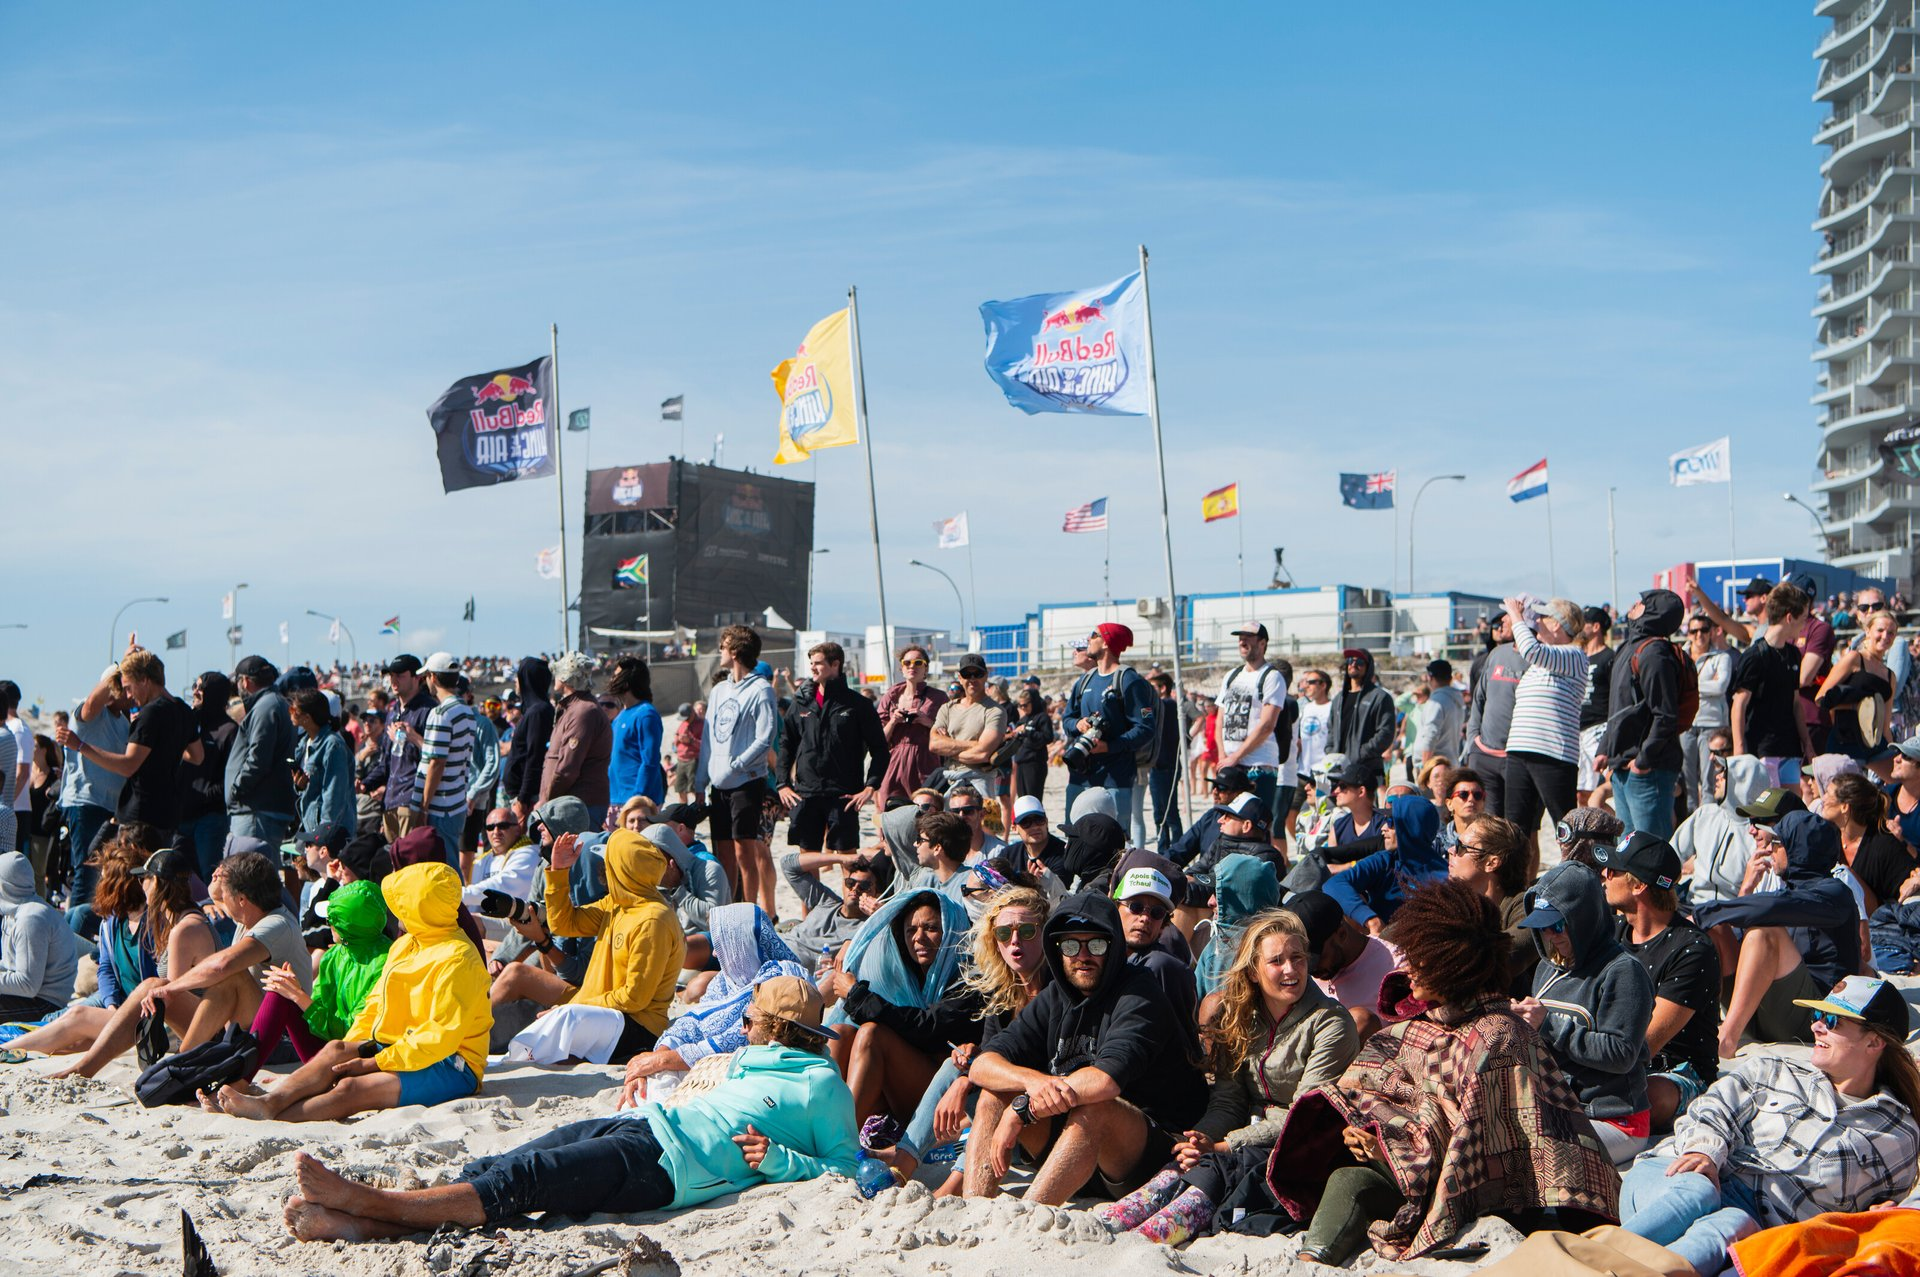 Red Bull King of the Air in Cape Town - Best Season 2020